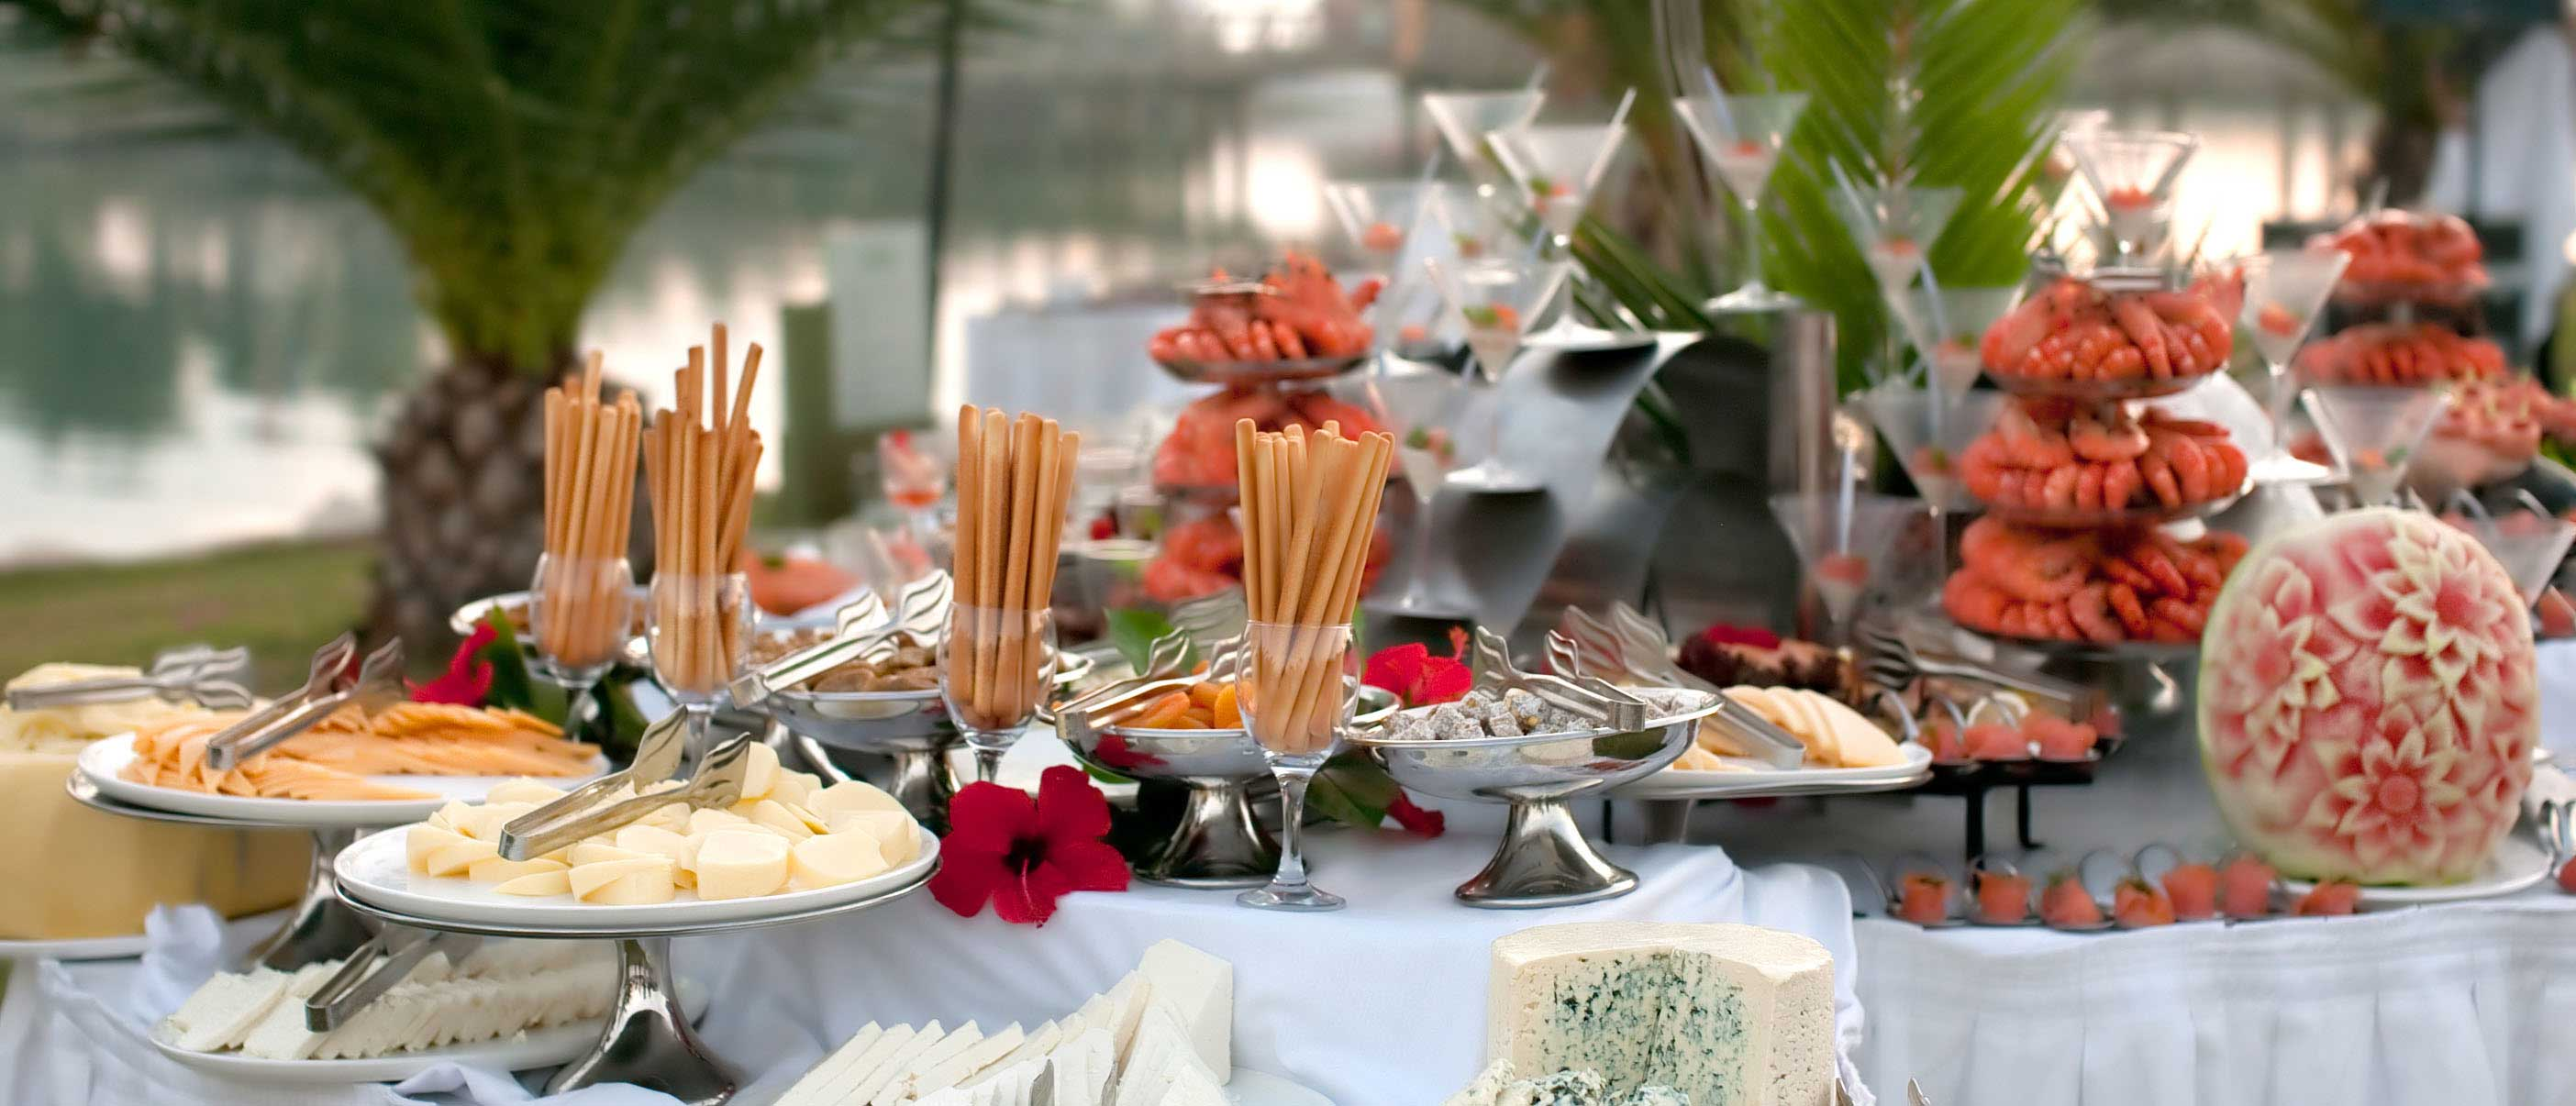 Vegetarian wedding caterers: Some useful tips to make the correct choice